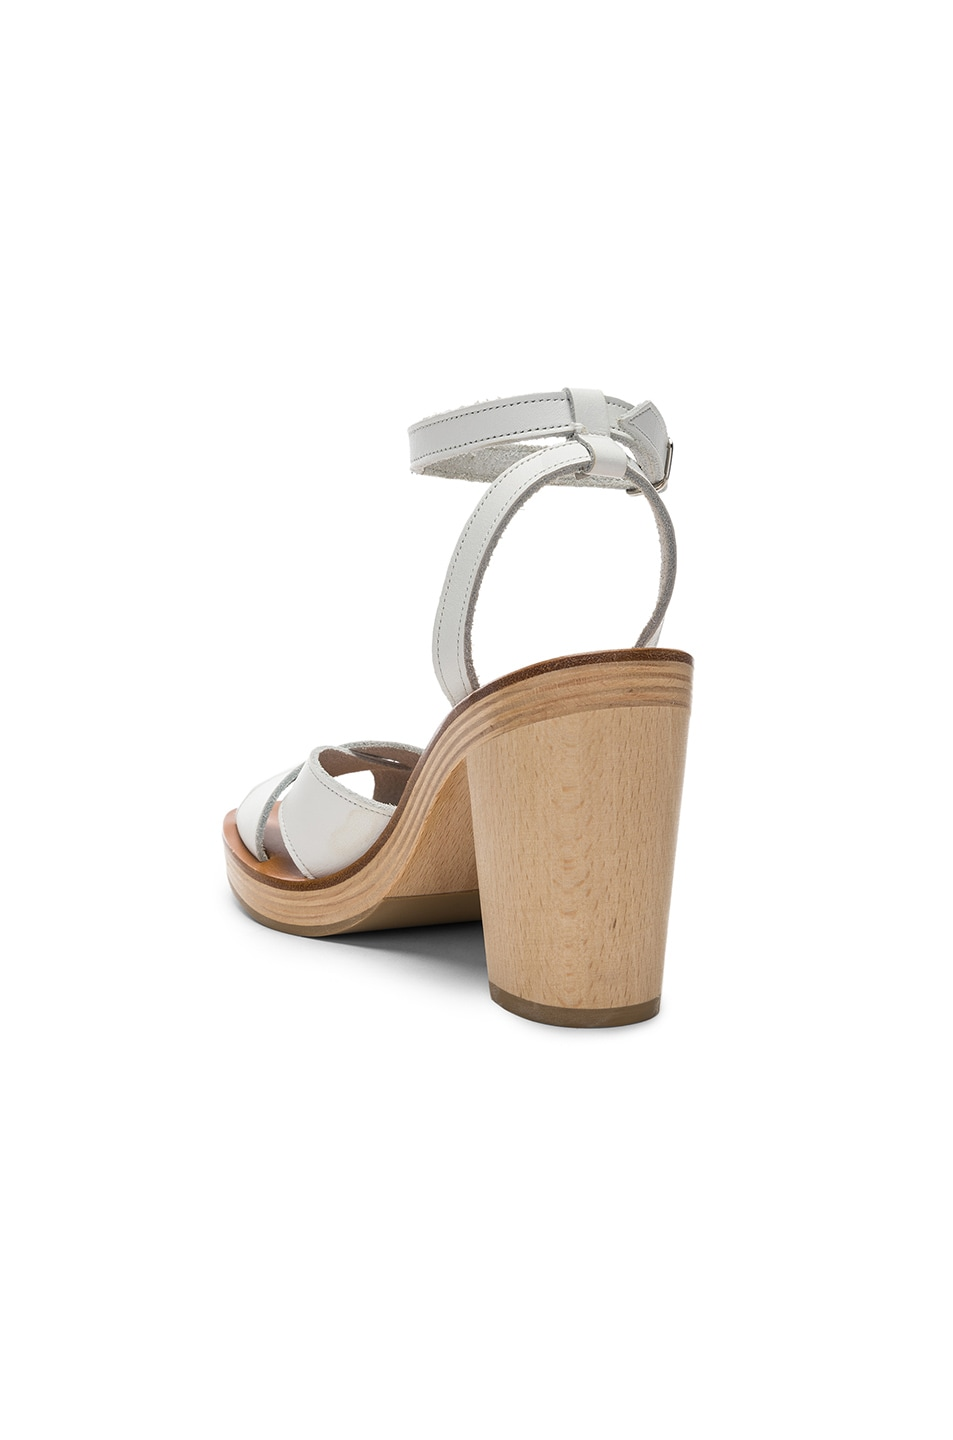 Image 3 of K Jacques Figuier Sandal in Pul Blanc